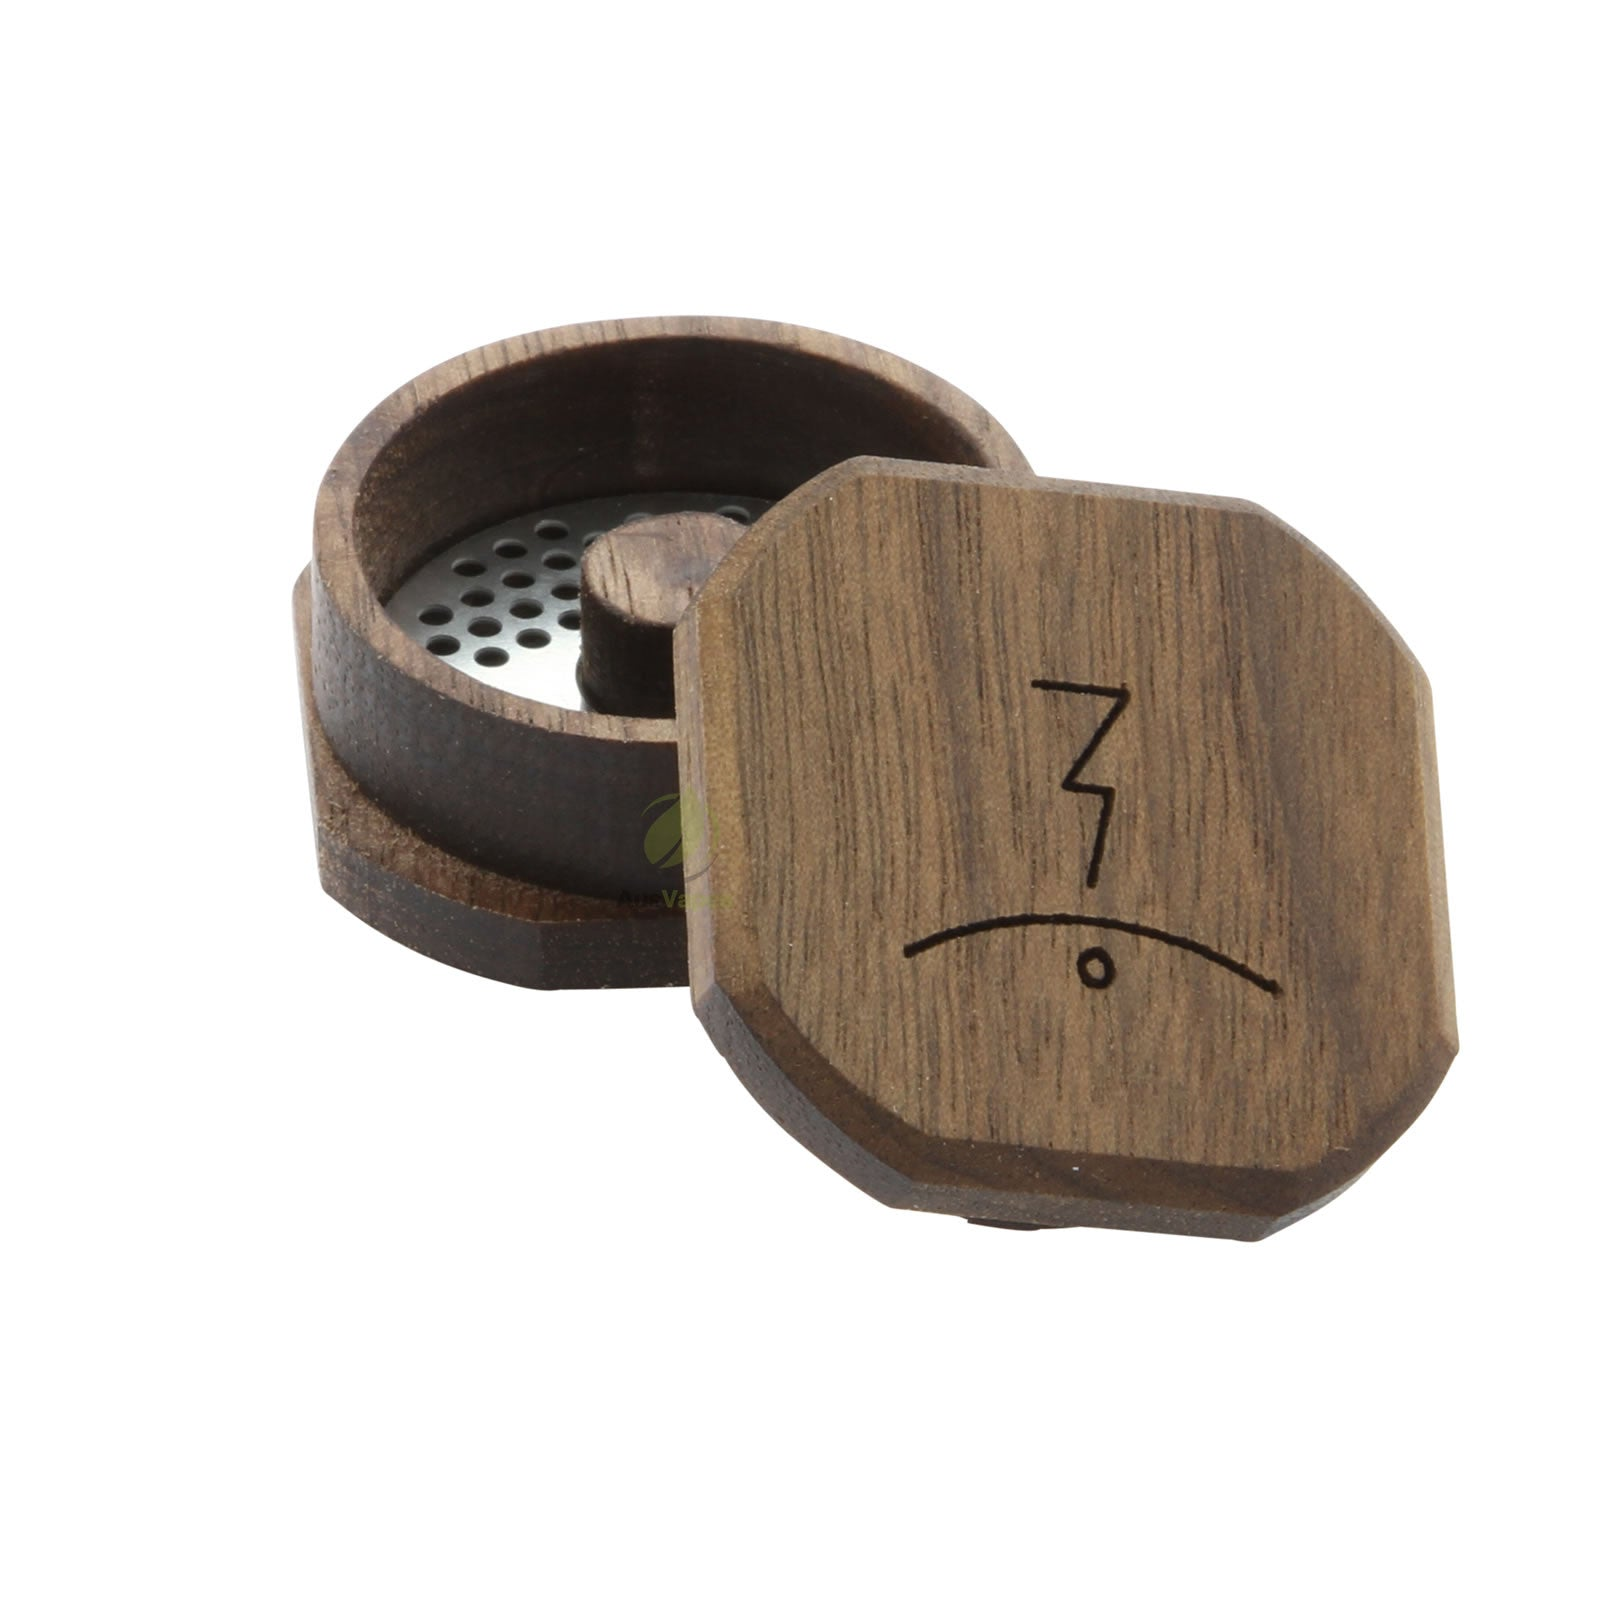 DISCONTINUED MFLB Finishing Grinder